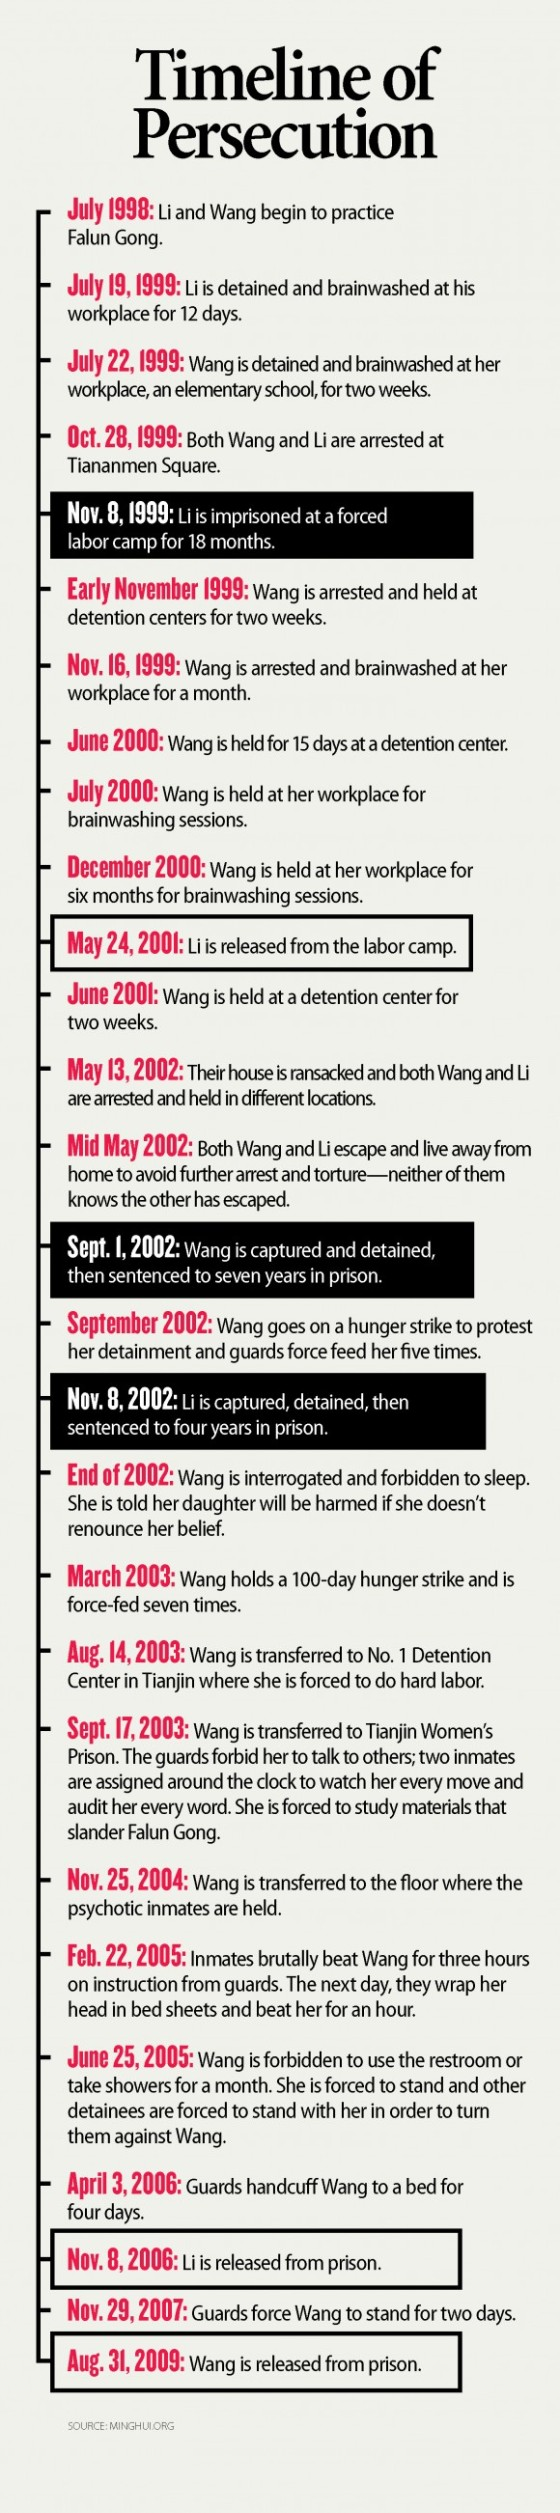 persecution-timeline-580x2603